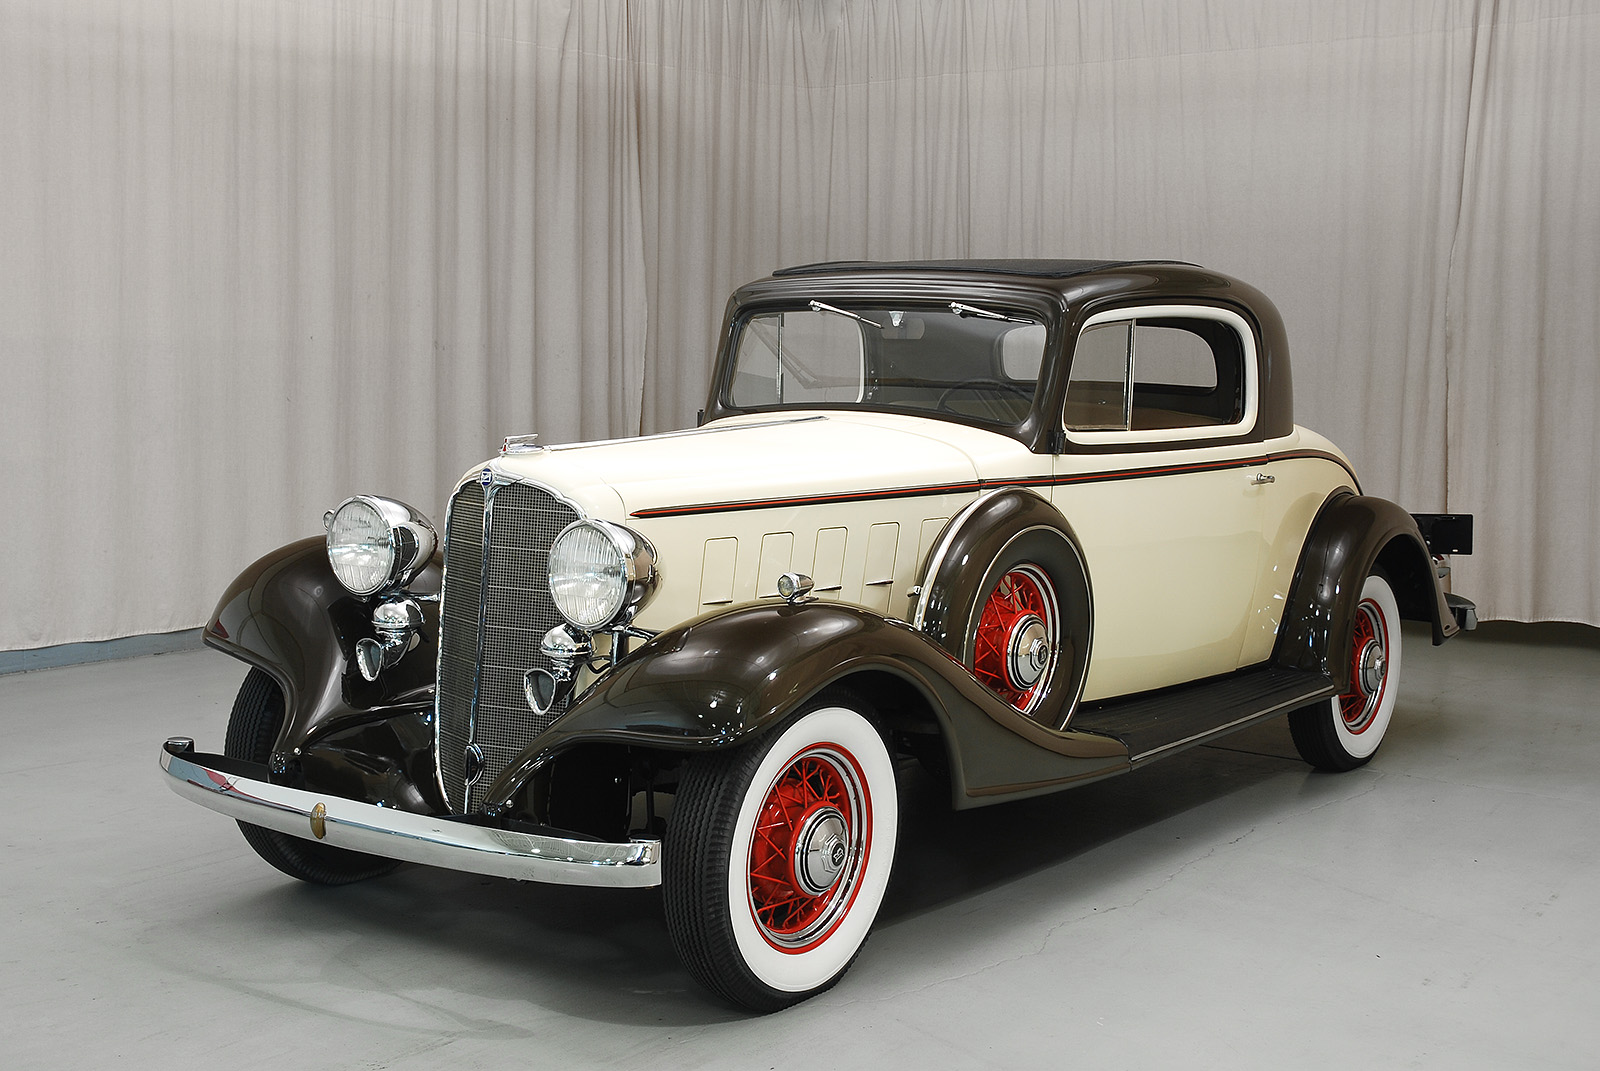 Sport Cars For Sale >> 1933 Buick Series 60 Sport Coupe | Hyman Ltd. Classic Cars